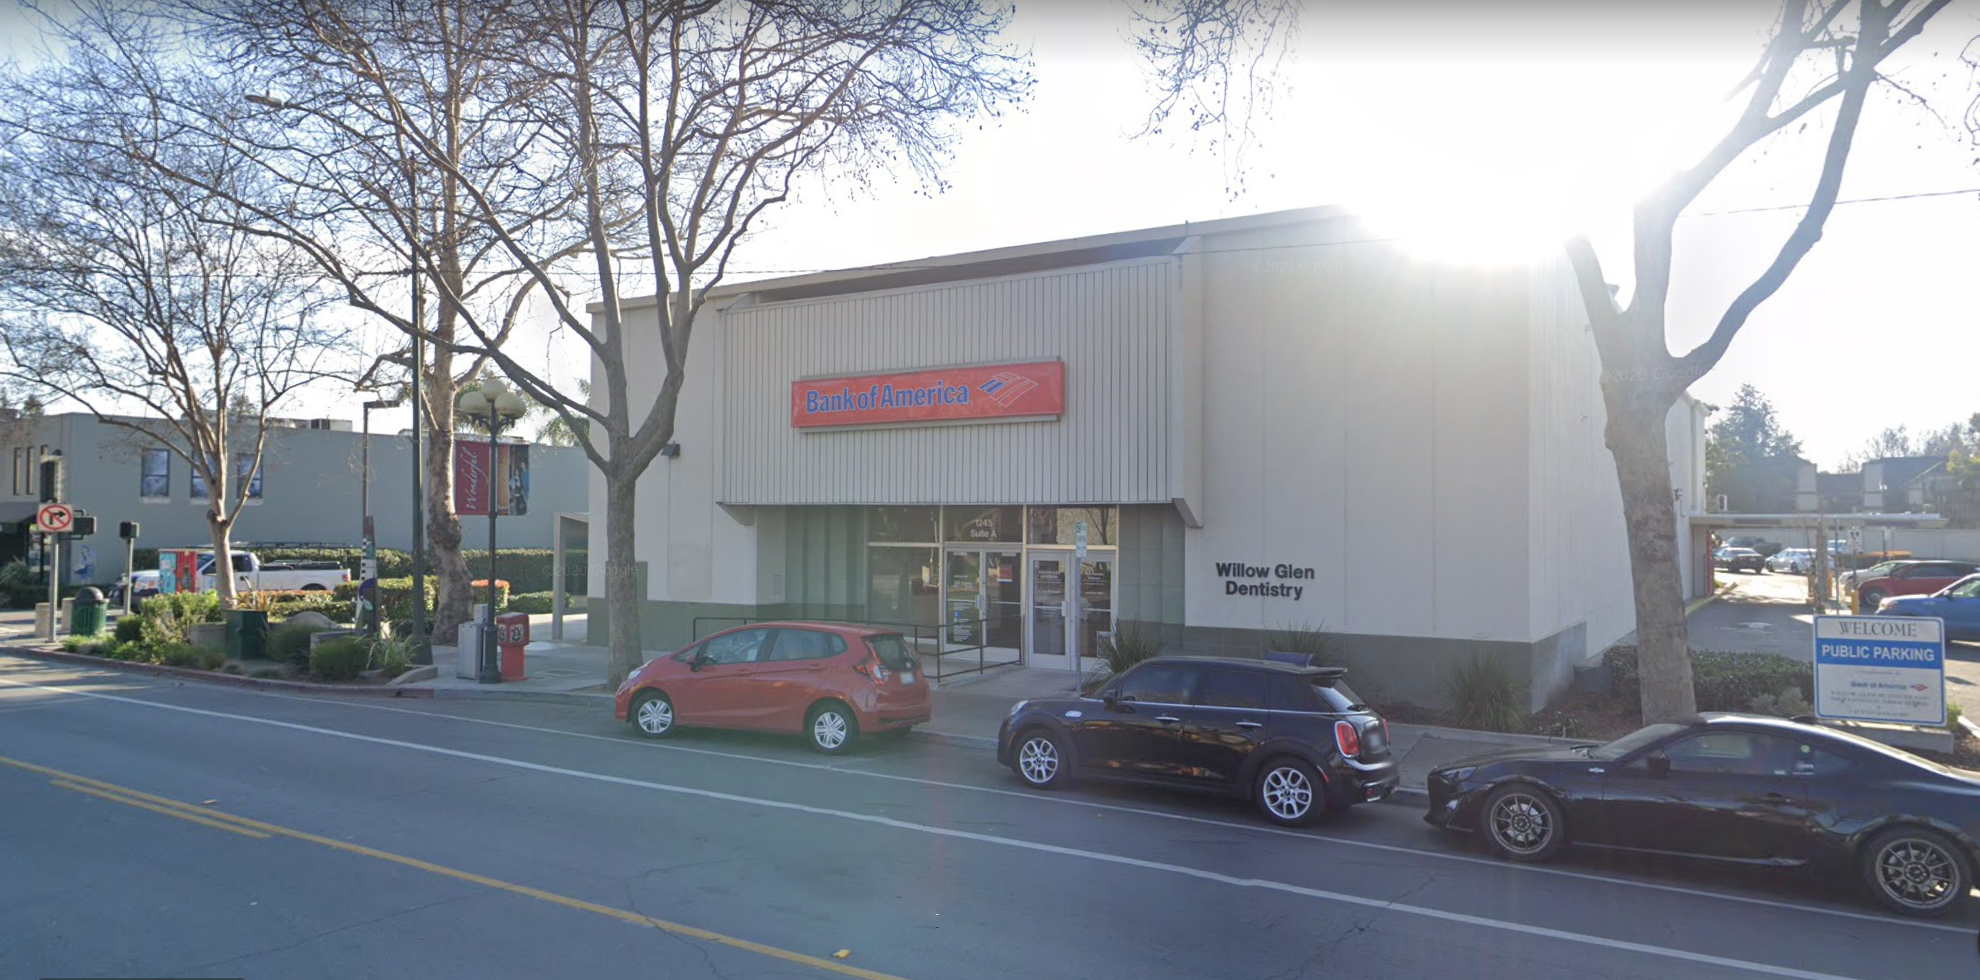 Bank of America financial center with drive-thru ATM | 1245 Lincoln Ave, San Jose, CA 95125